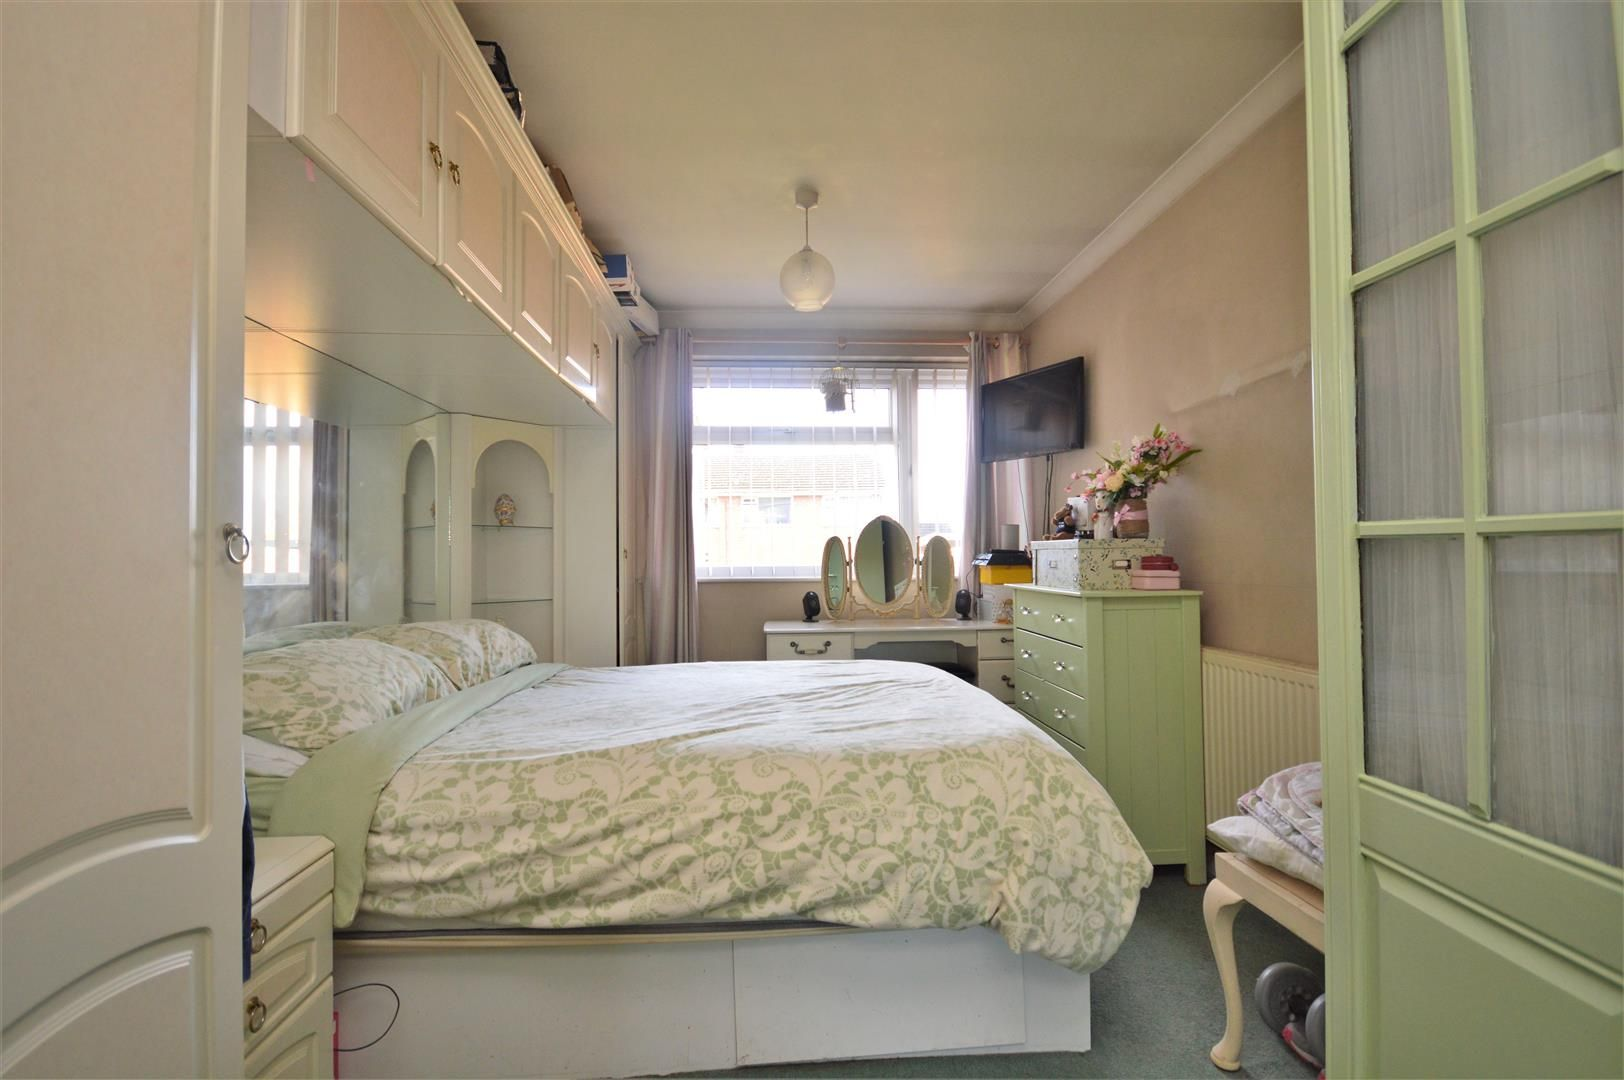 2 bed apartment for sale in Hereford 7